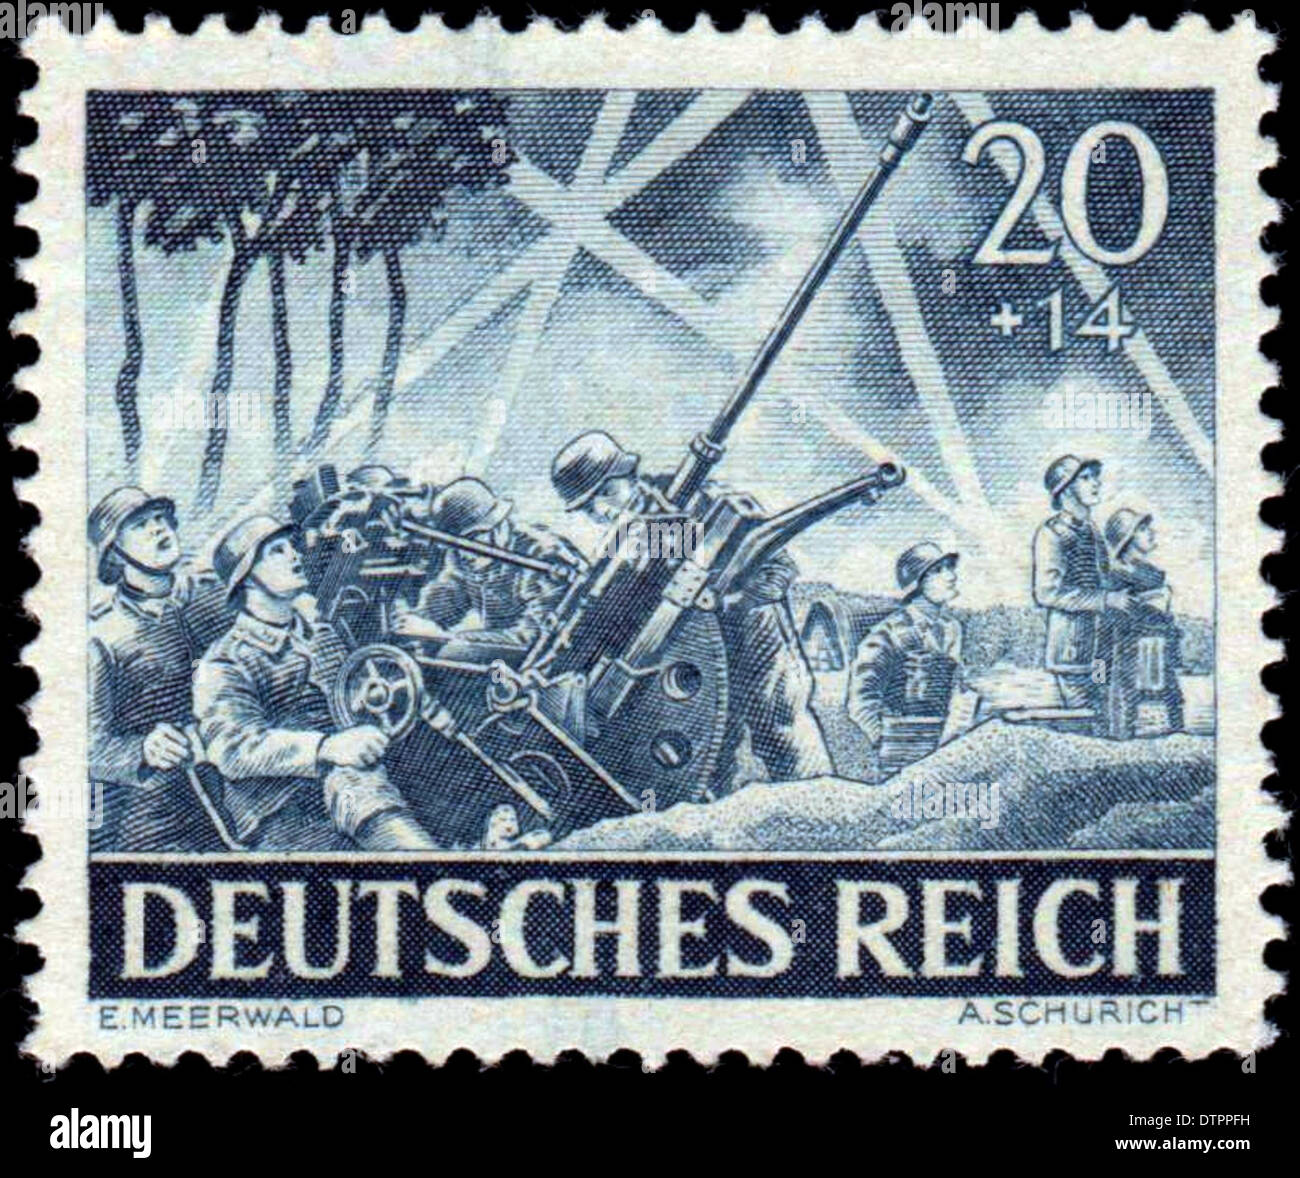 A German postage stamp from WW2 depicting German anti aircraft troops - Stock Image